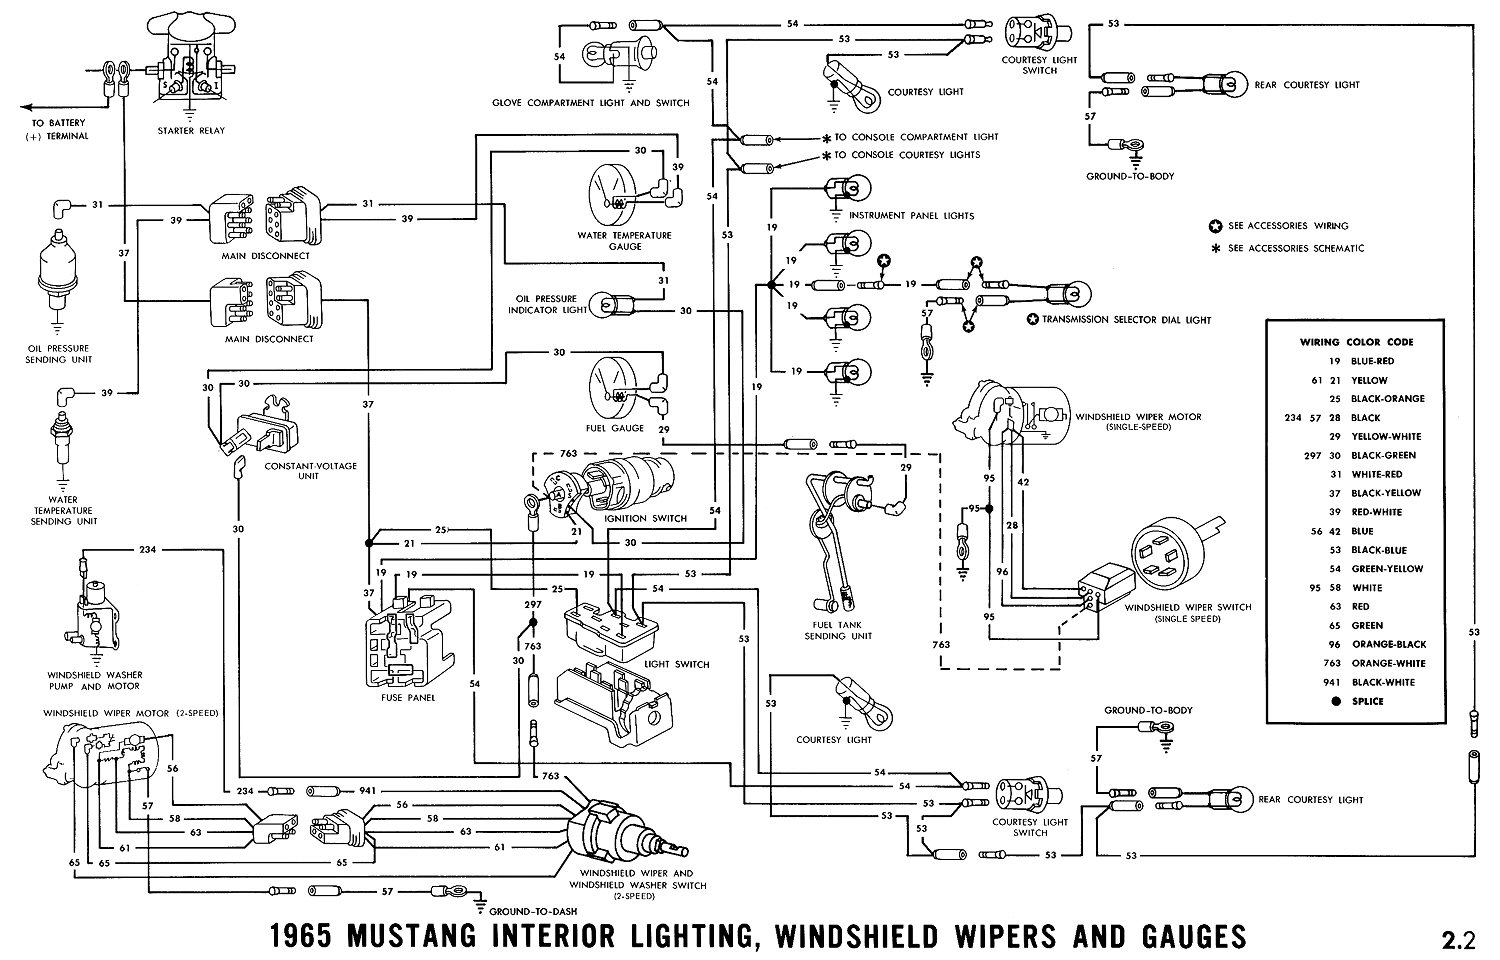 hight resolution of 1965 mustang wiring diagrams average joe restoration 1965 ford mustang wiring 1965 ford mustang wiring